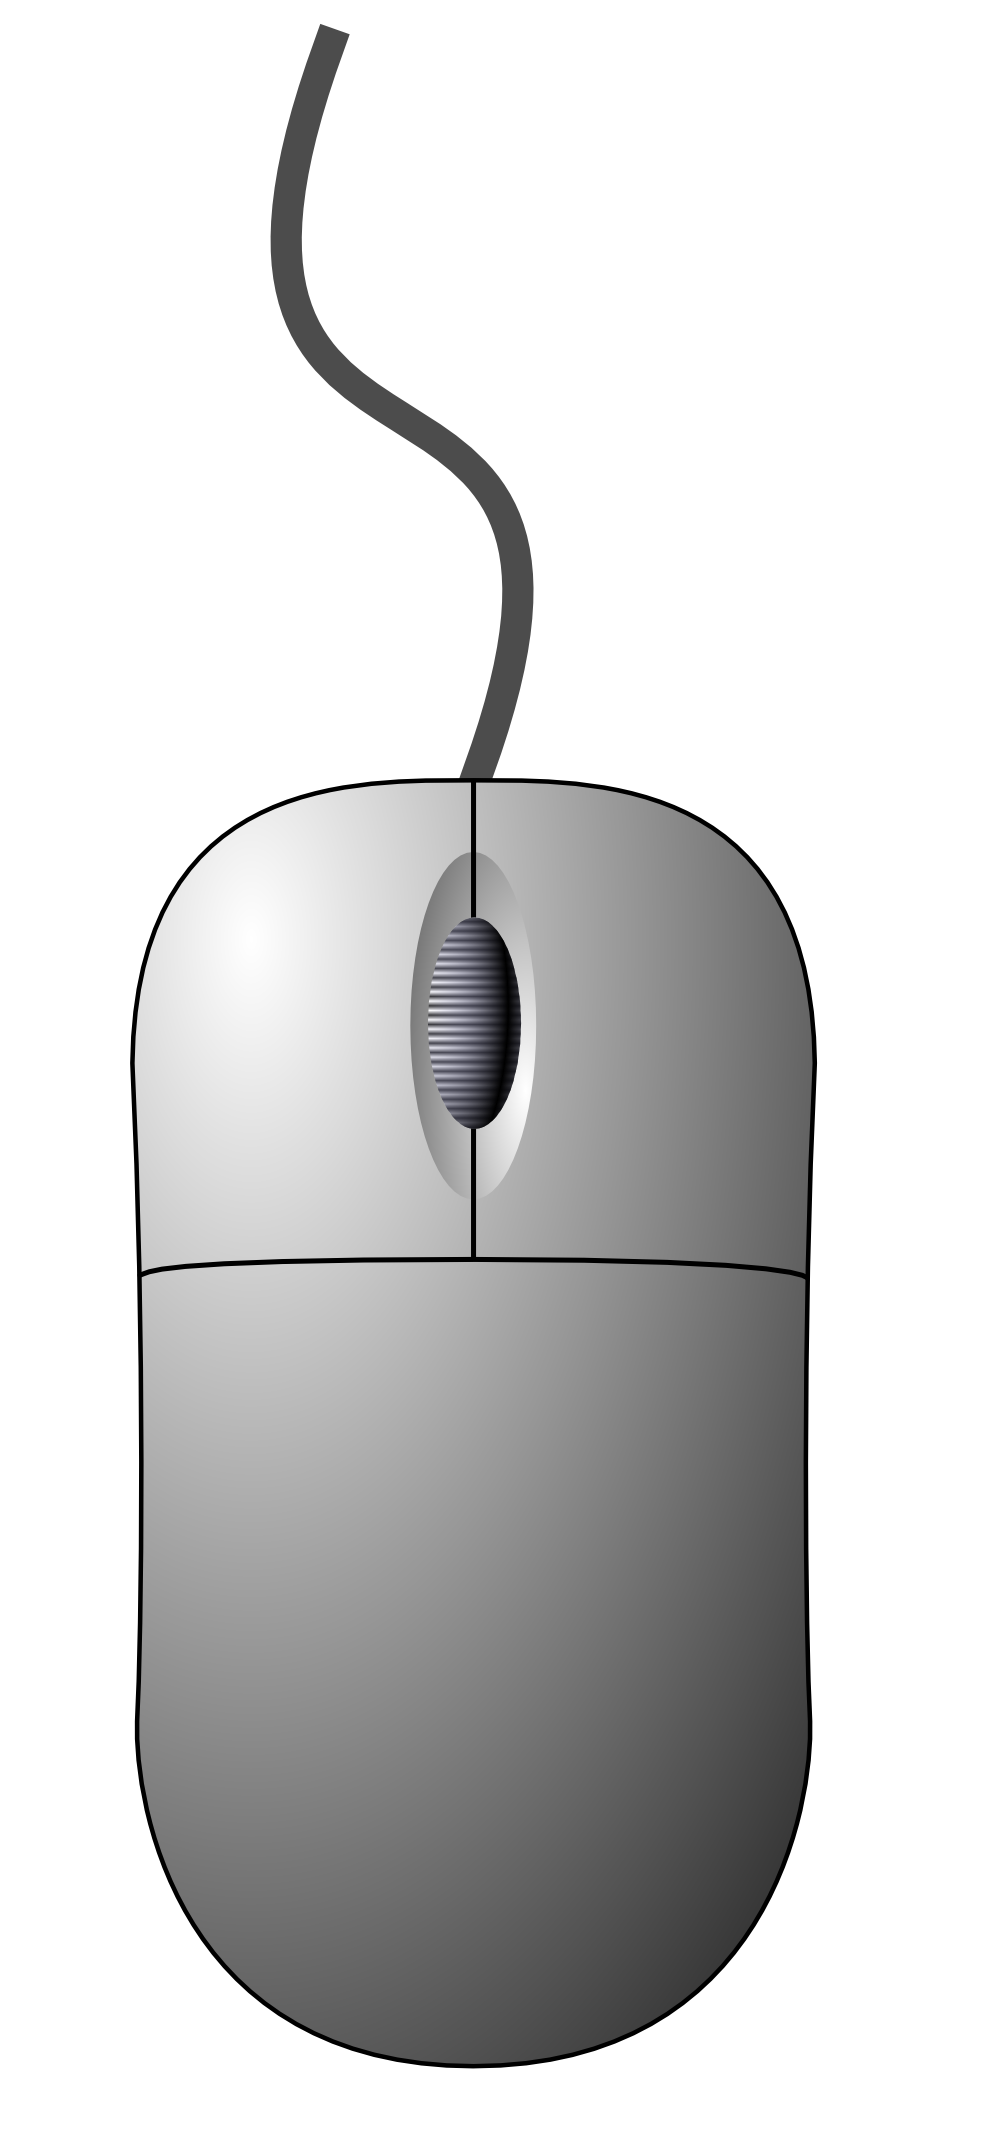 PC computer mouse PNG images free download.